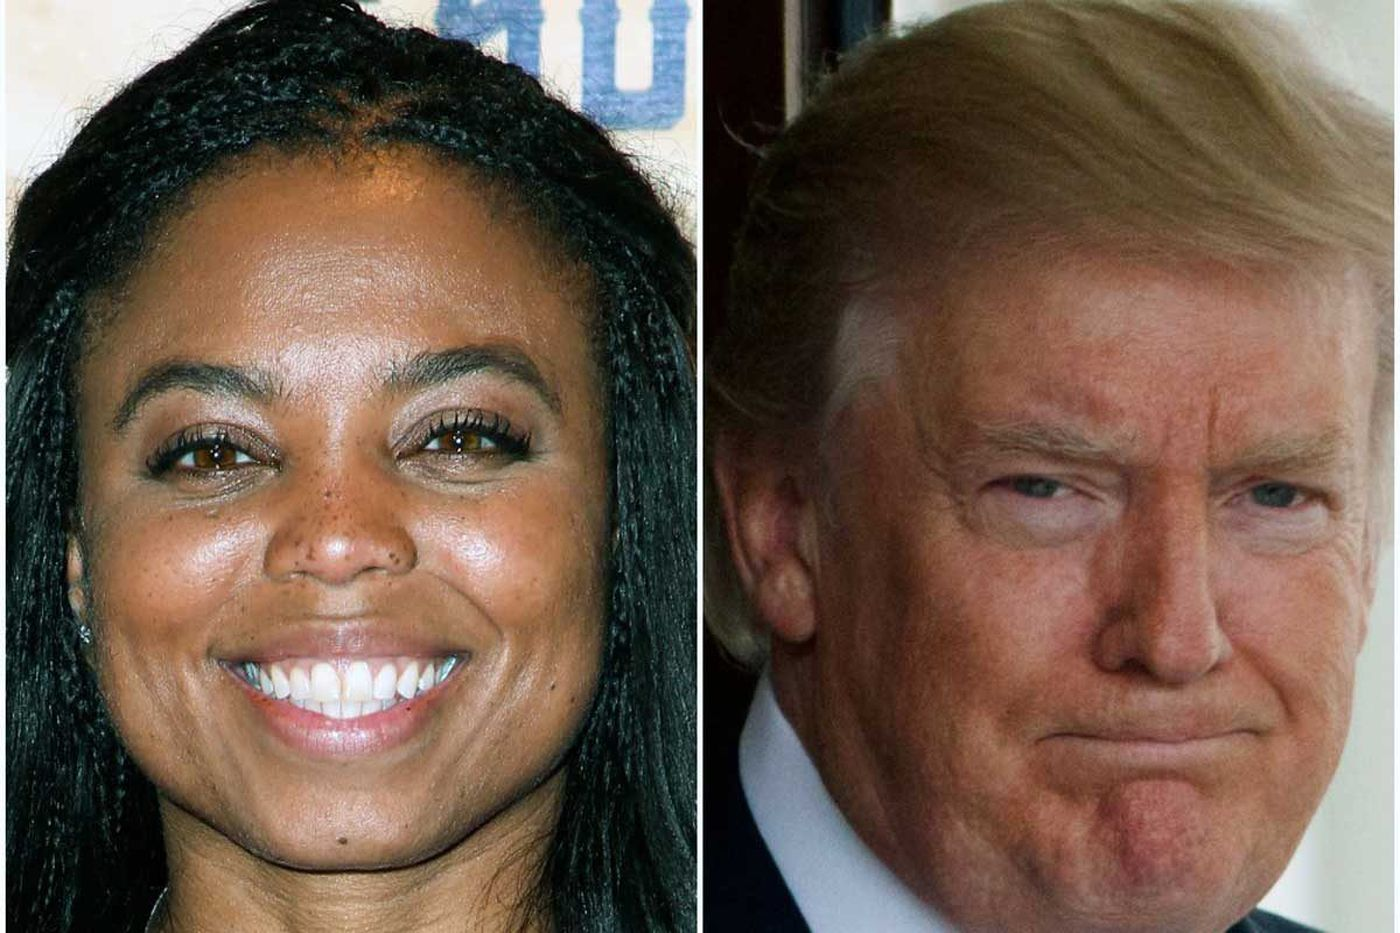 White House: ESPN should fire Jemele Hill over Trump 'white supremacist' tweet